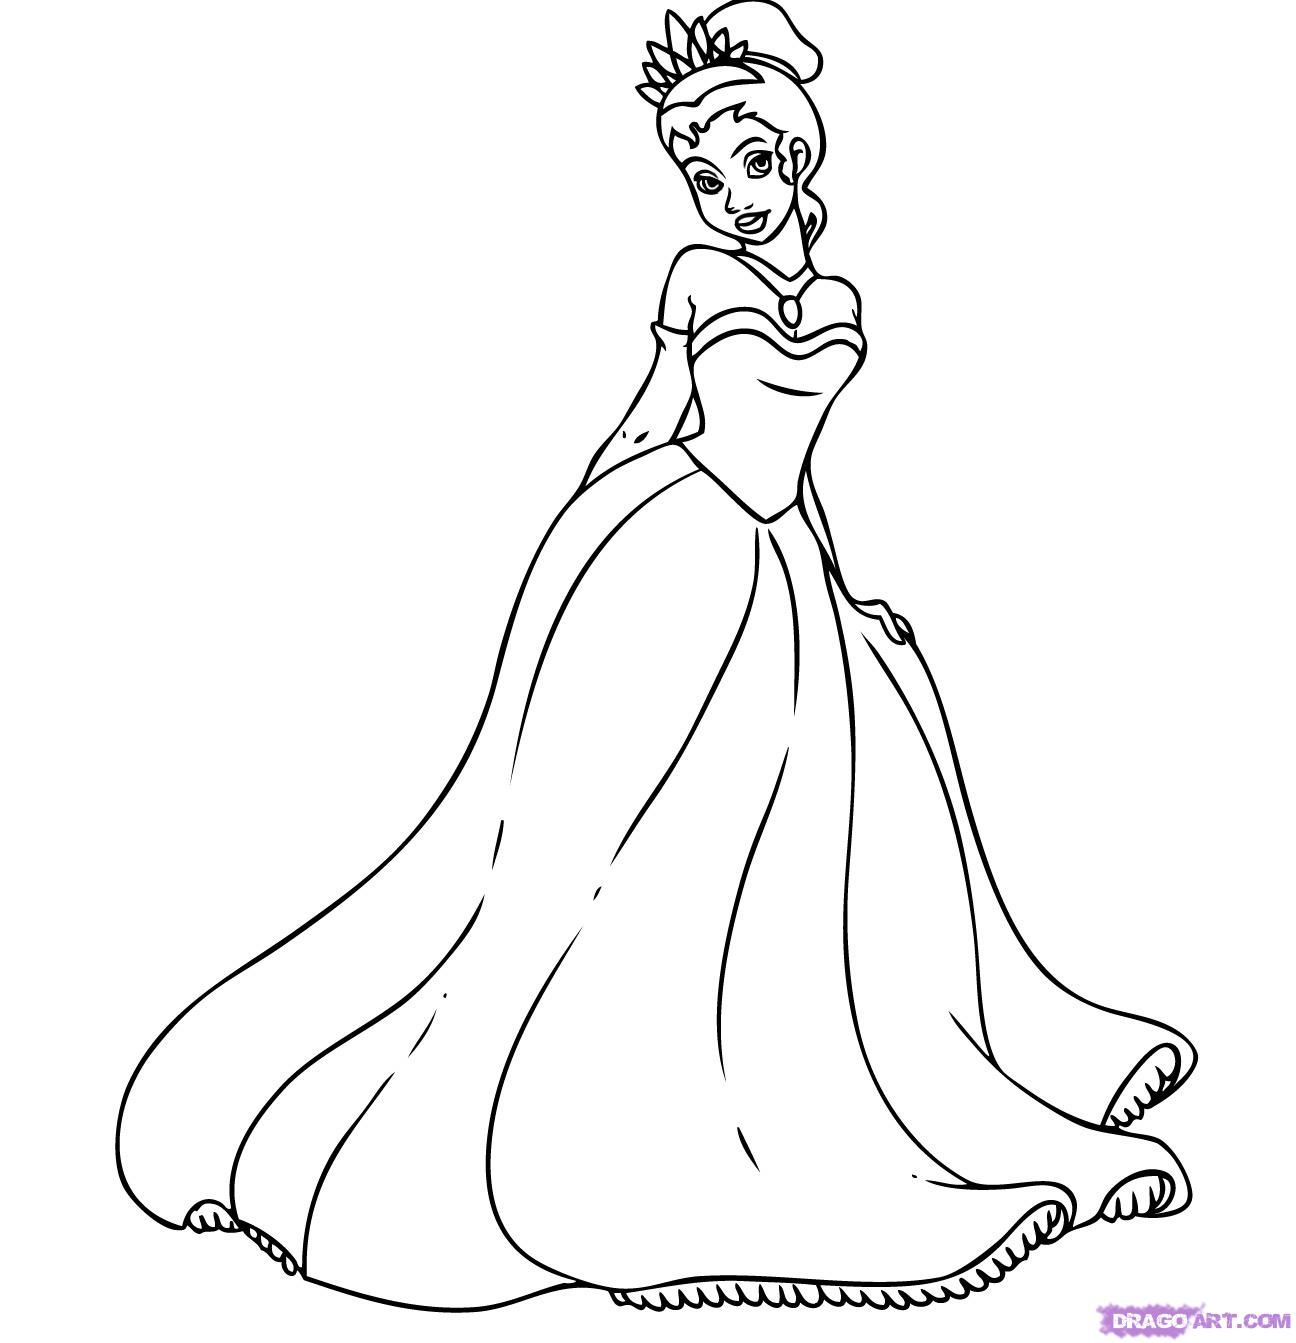 How to draw the Princess Tiana with a pencil step by step